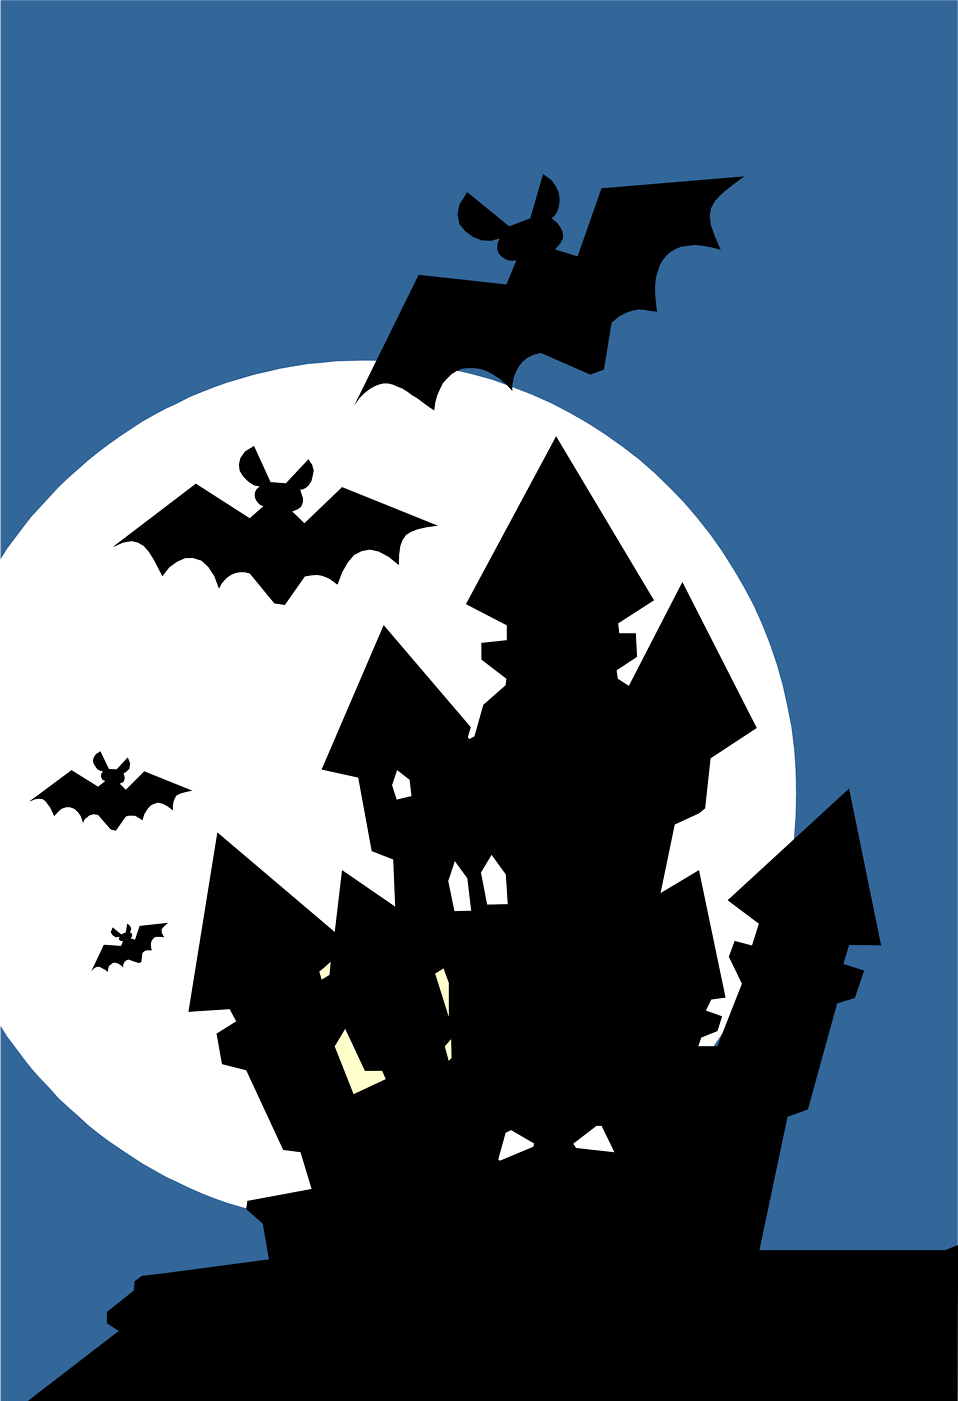 Haunted clipart silhouette #8